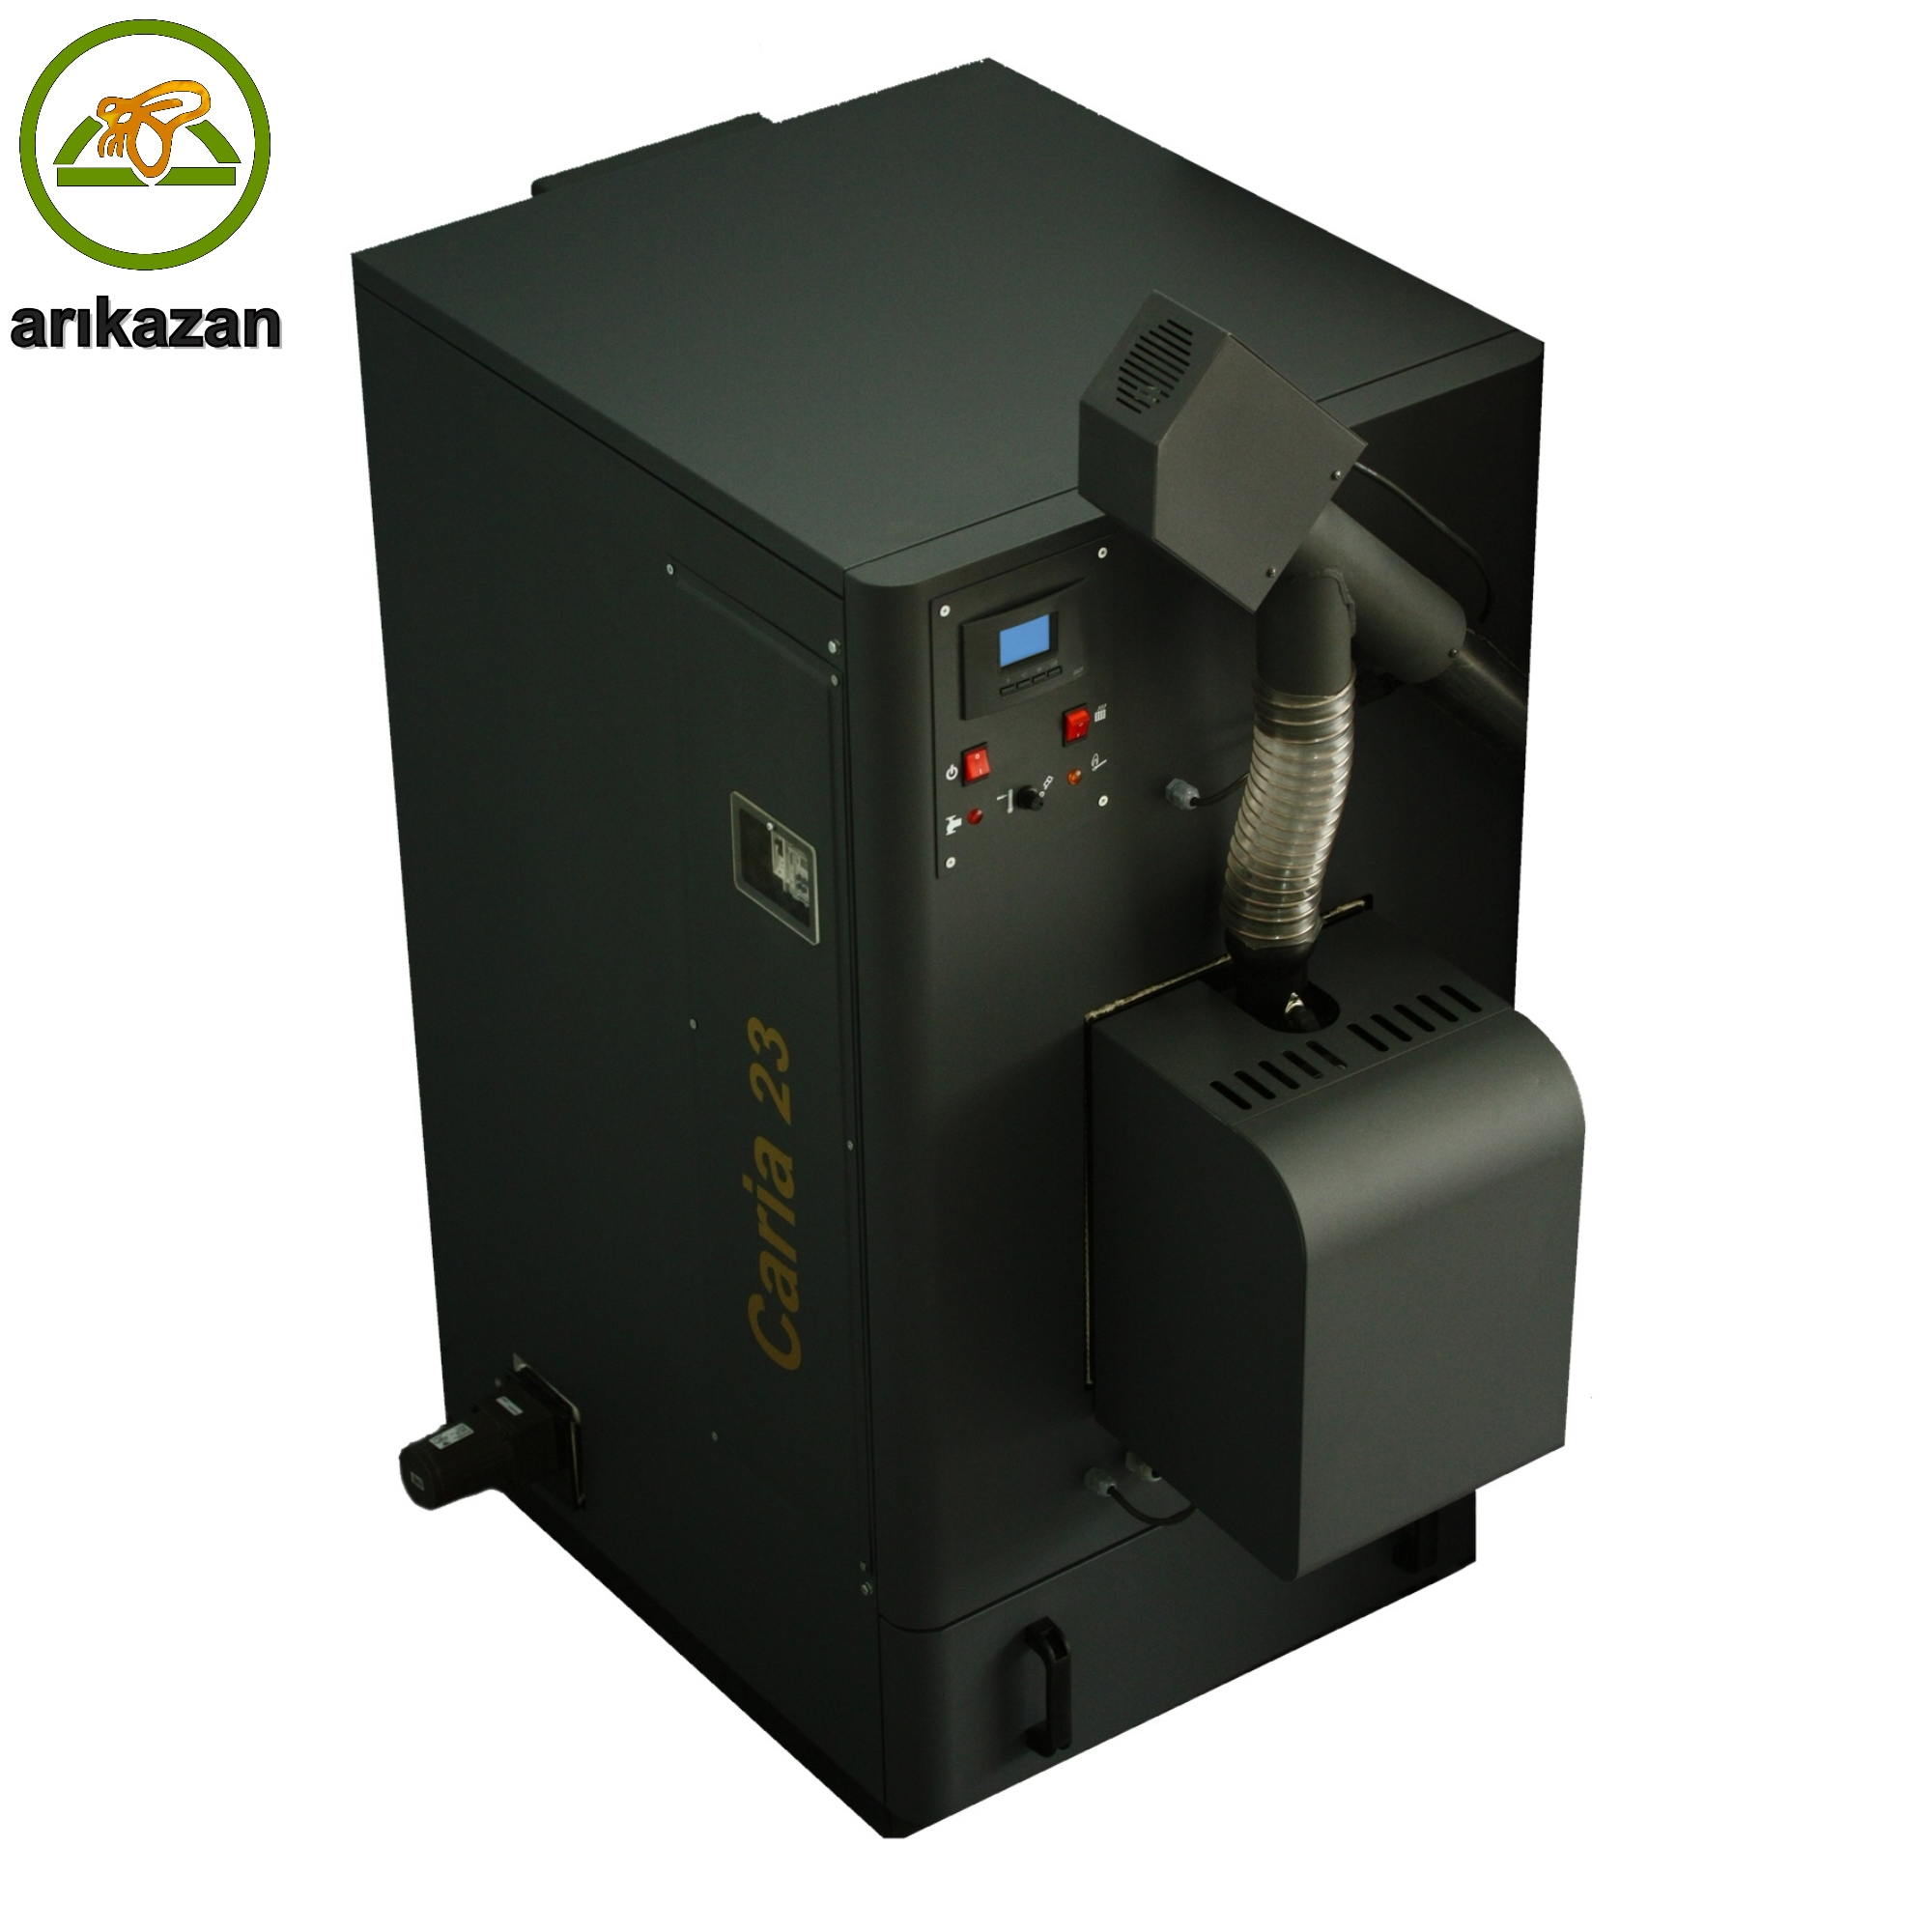 Pellet Kw Full Automatic Pellet Boilers 23kw 40kw 60 Kw Buy Pellet Boiler Wood Pellet Heater Product On Alibaba